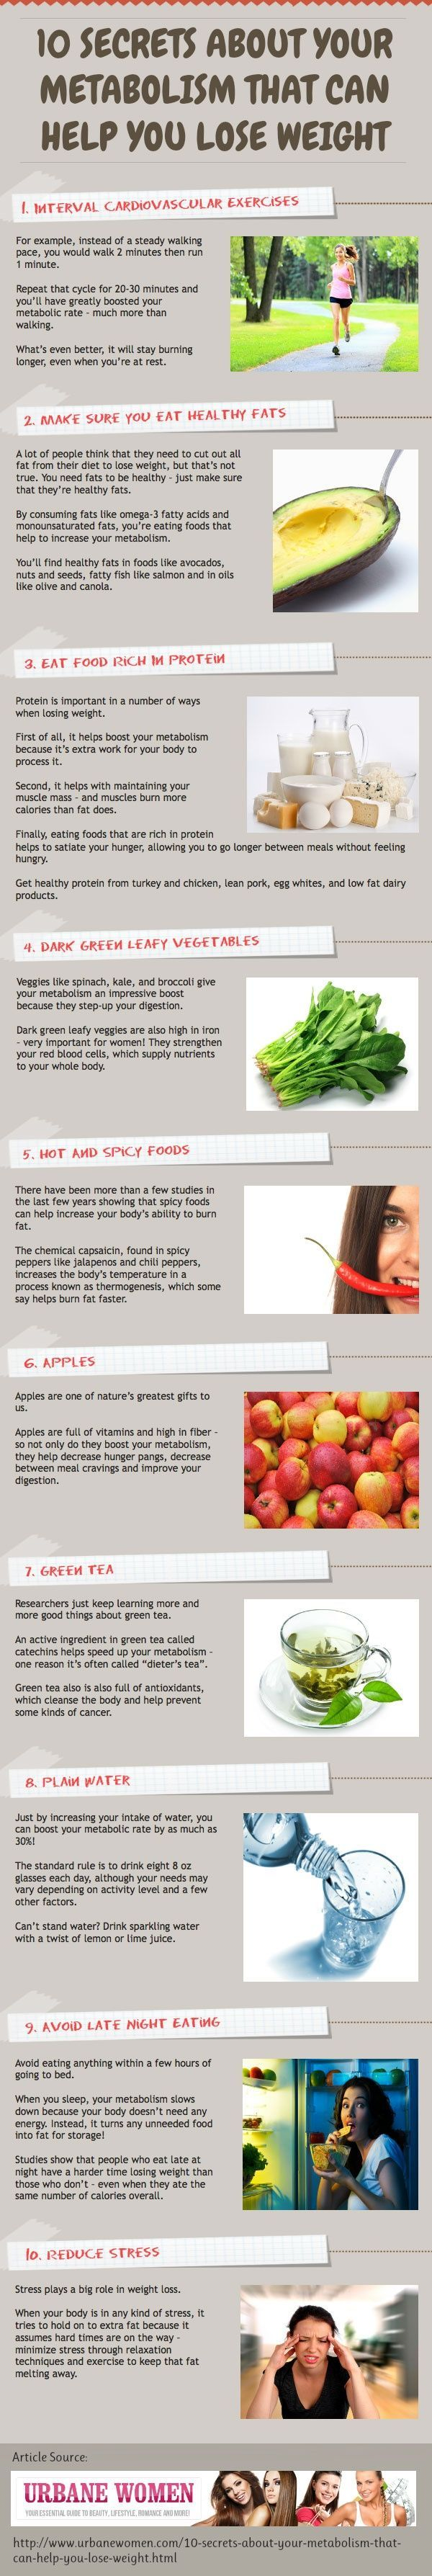 10 Secrets About Your Metabolism that can Help You Lose Weight | Secrets about your metabolism you should know.